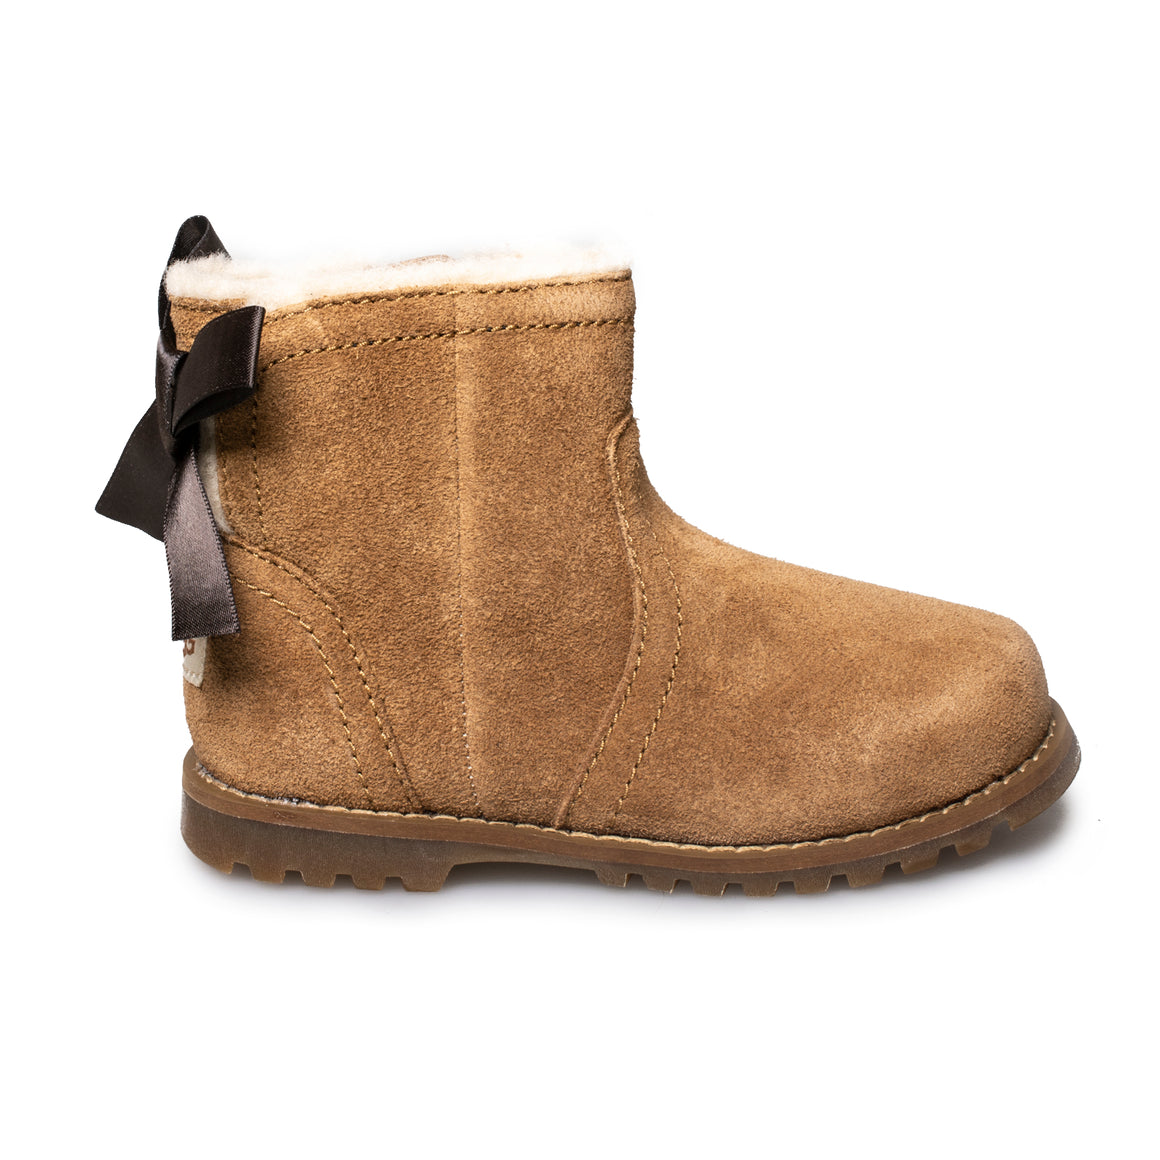 UGG Cecily Chestnut Boots - Toddler